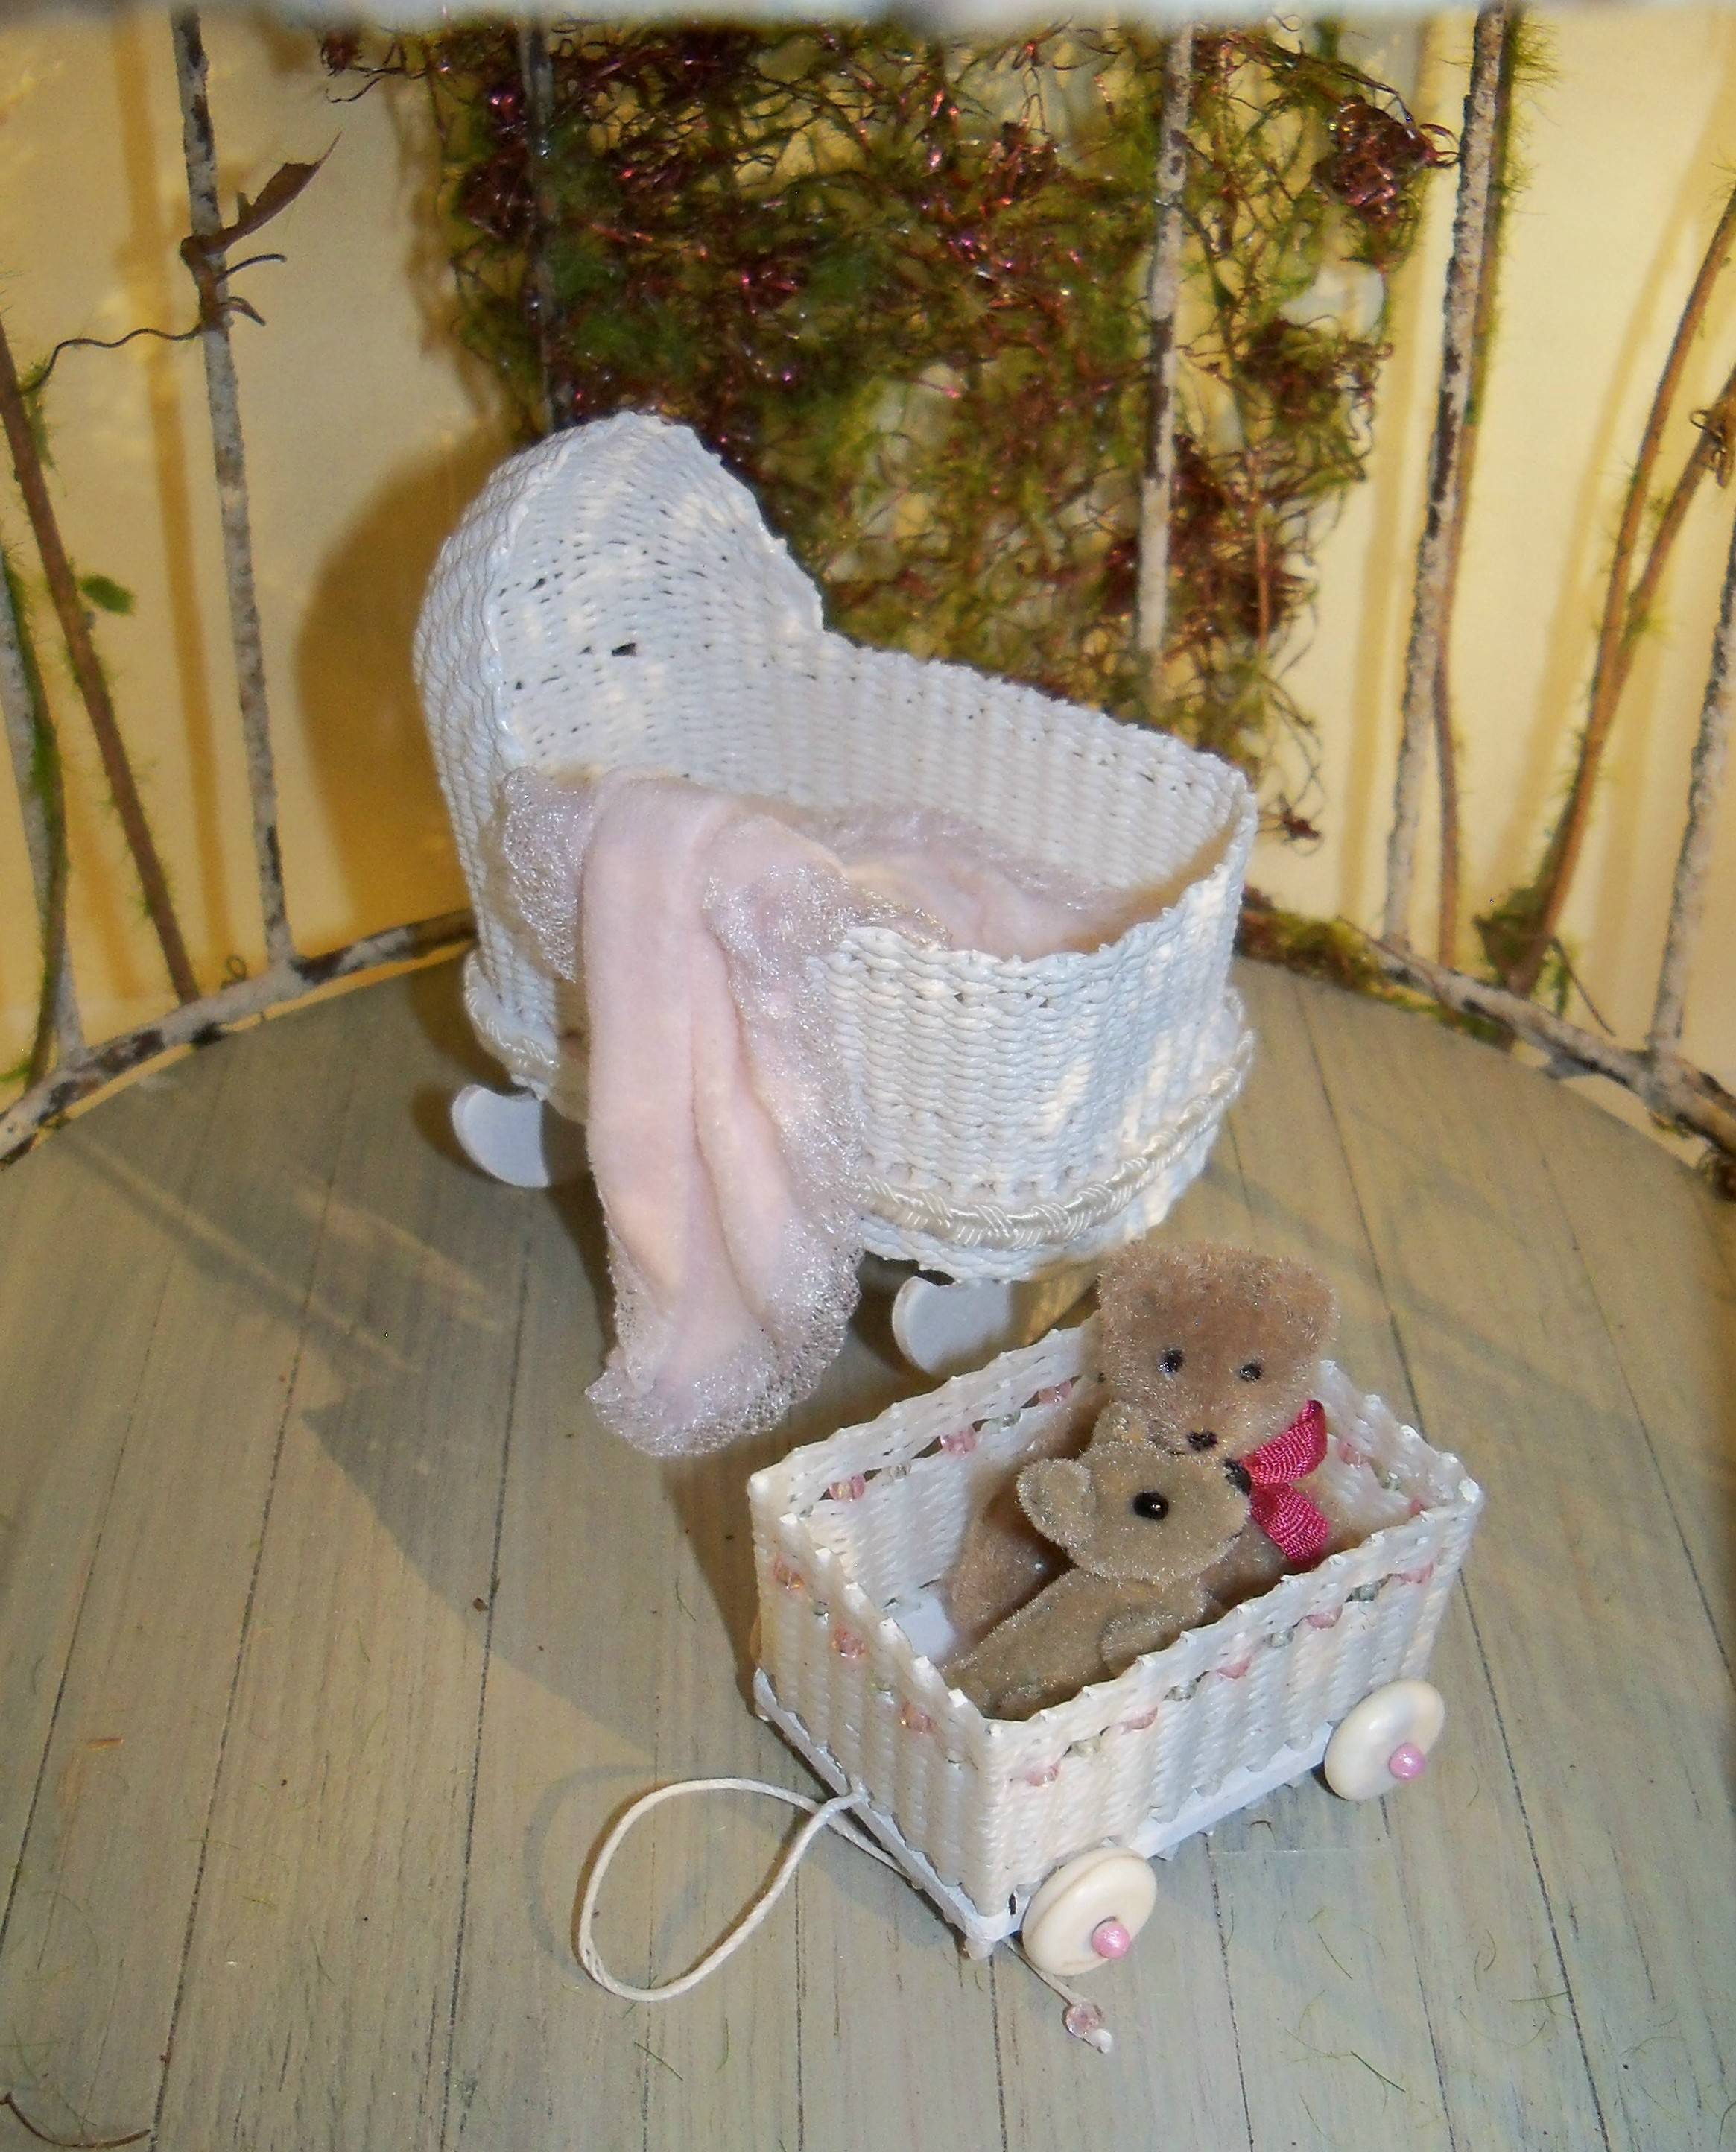 Cradle and toy cart